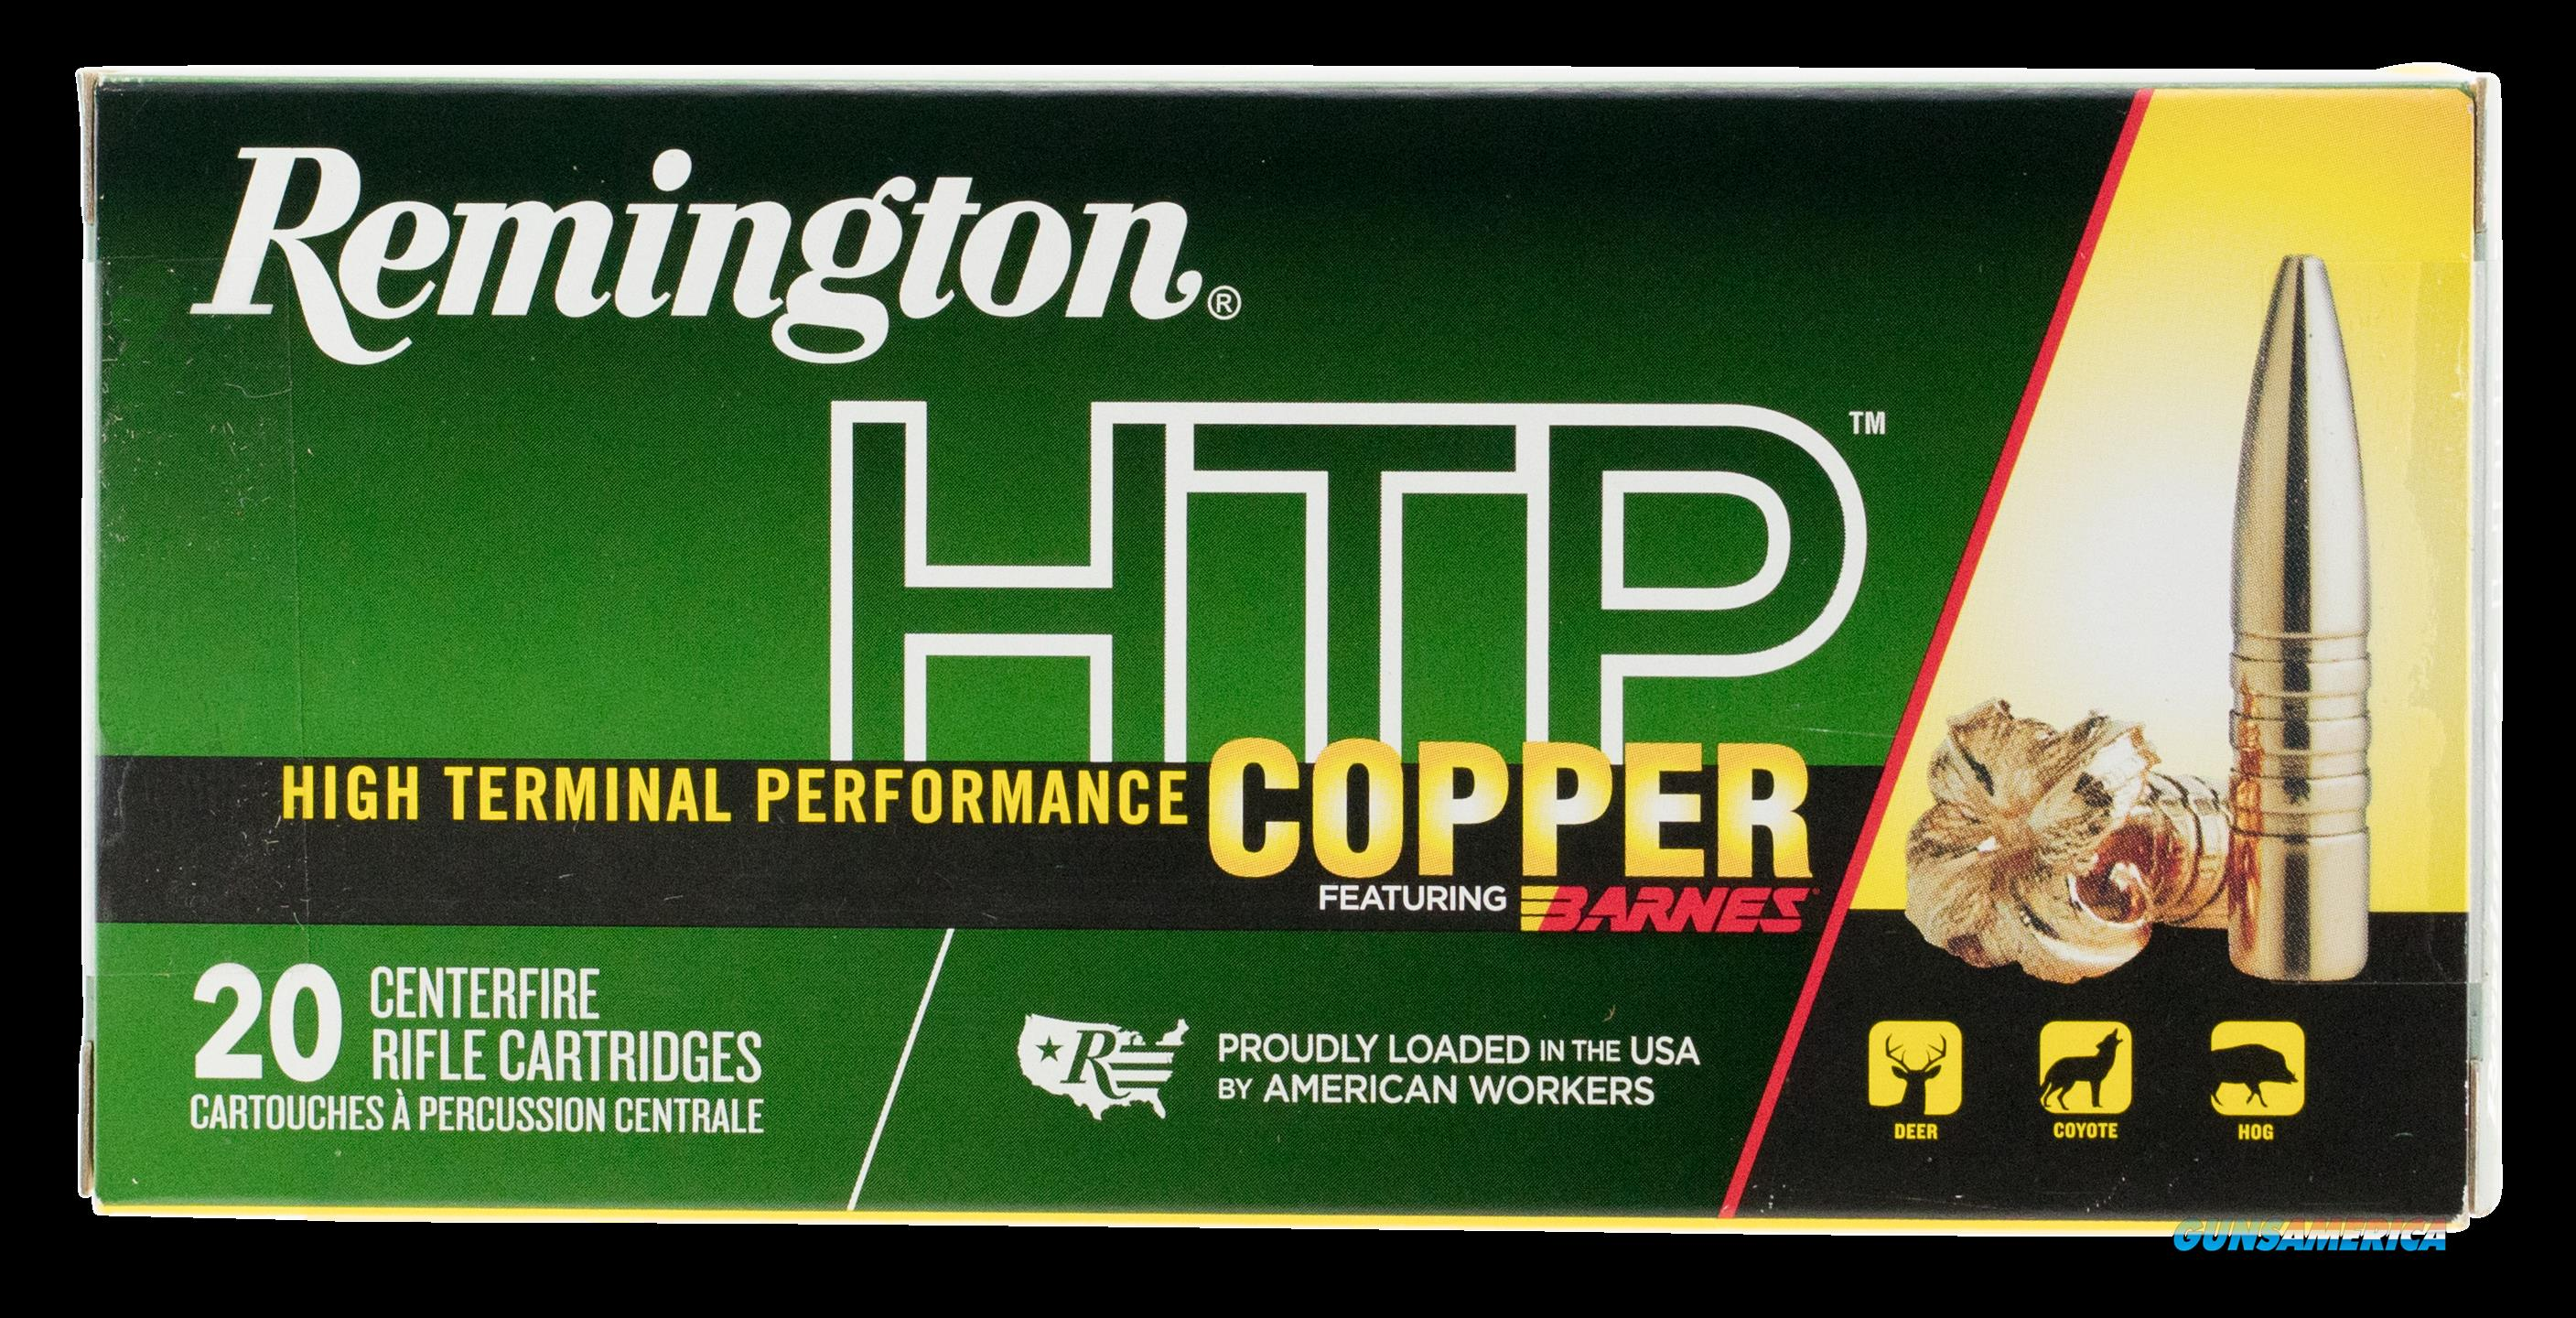 Remington Ammunition Htp Copper, Rem 27722 Htp300um  Htp Copper 180 Tsx Bt 20-10  Guns > Pistols > 1911 Pistol Copies (non-Colt)